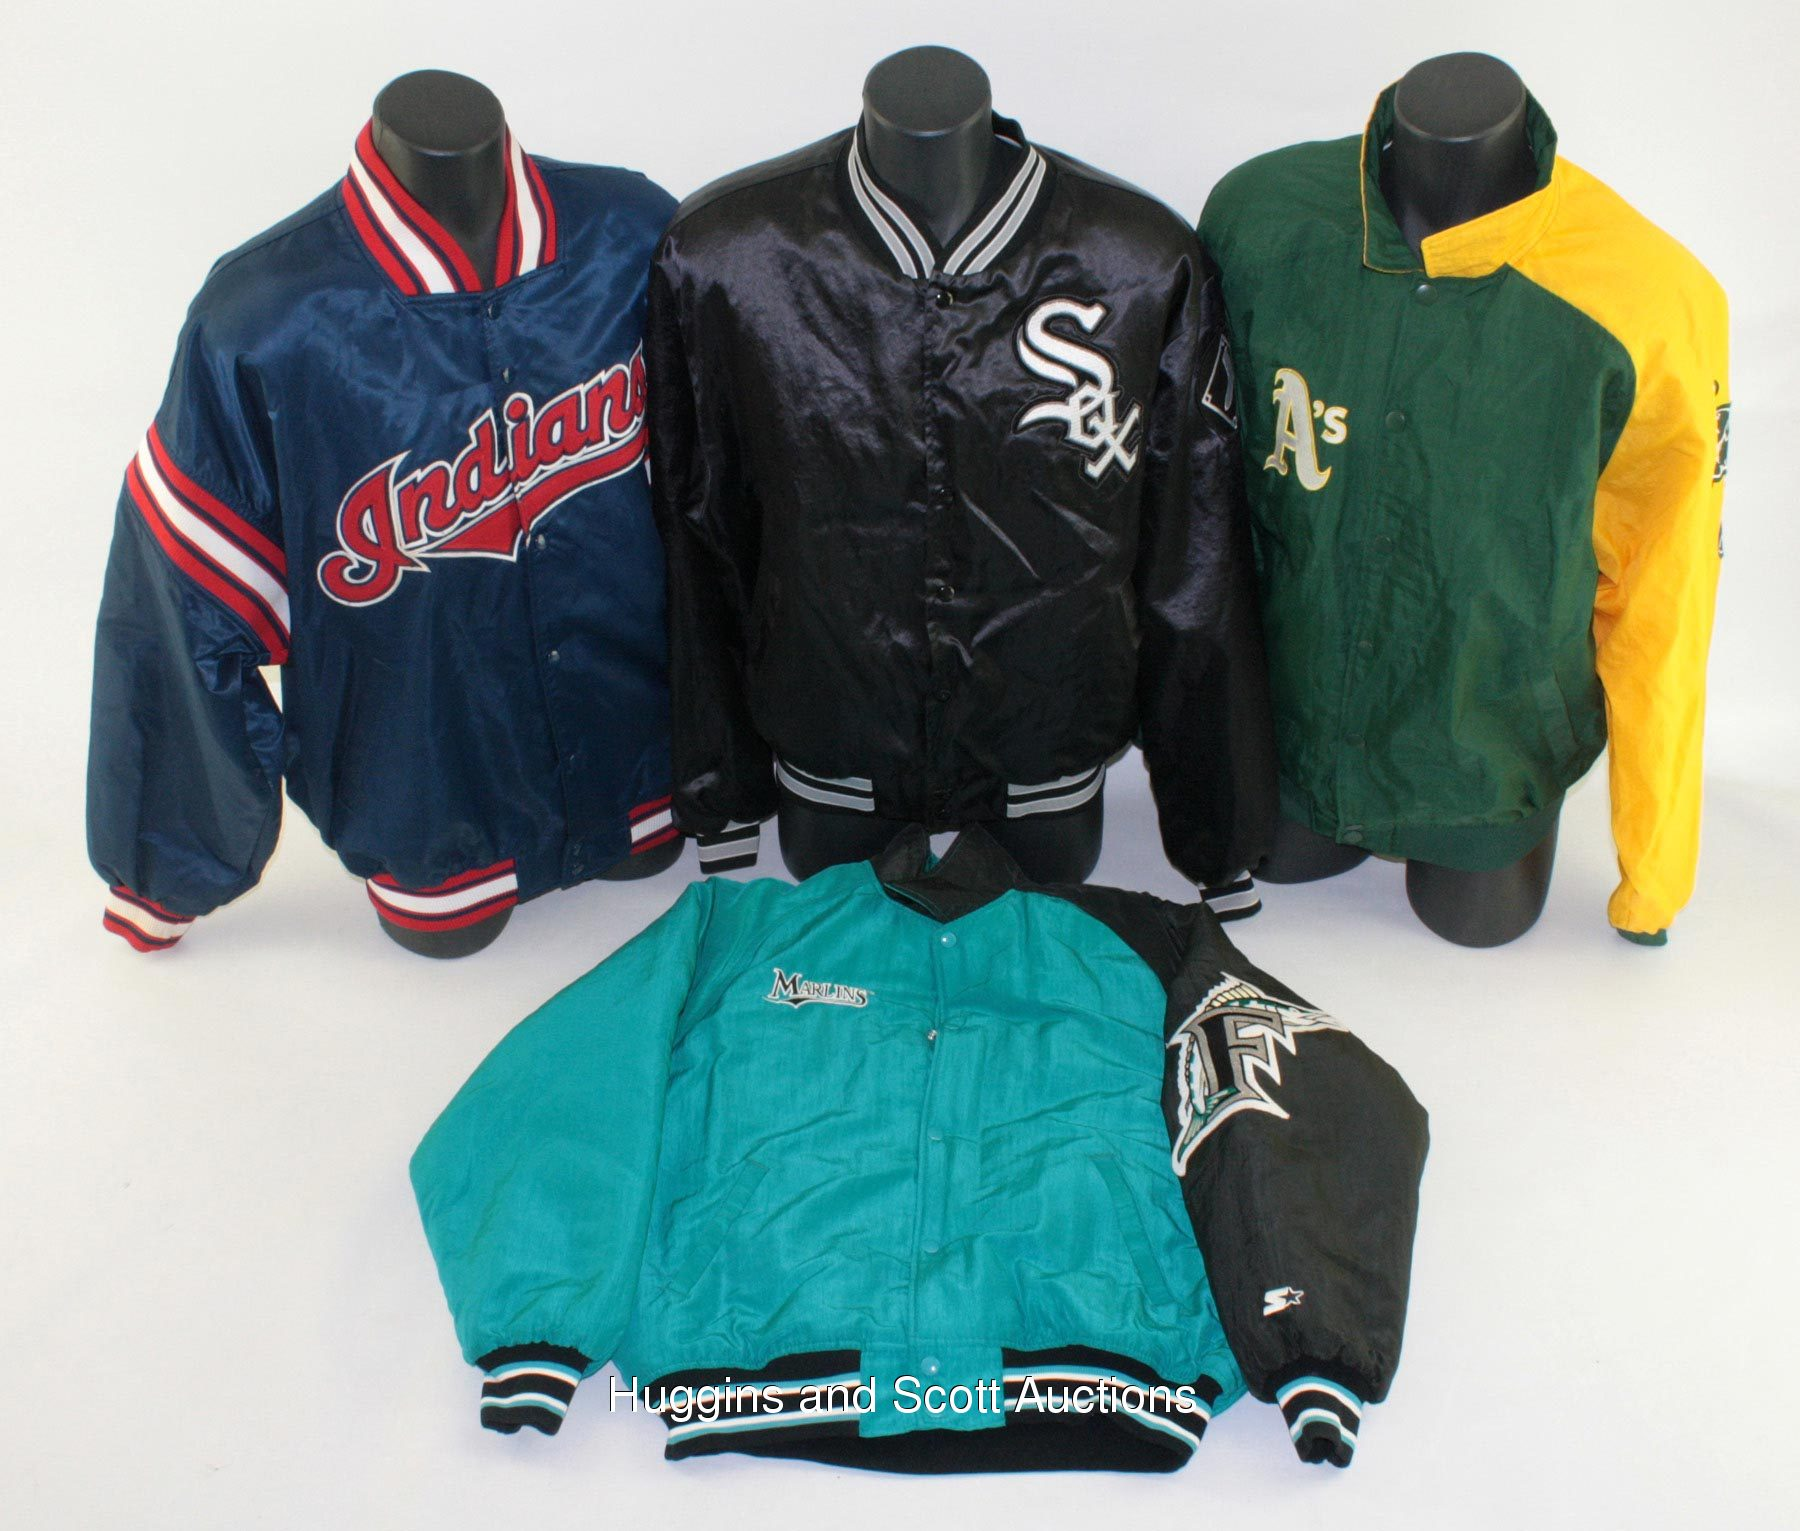 7) Professional Style Major League Baseball Jackets with Vintage